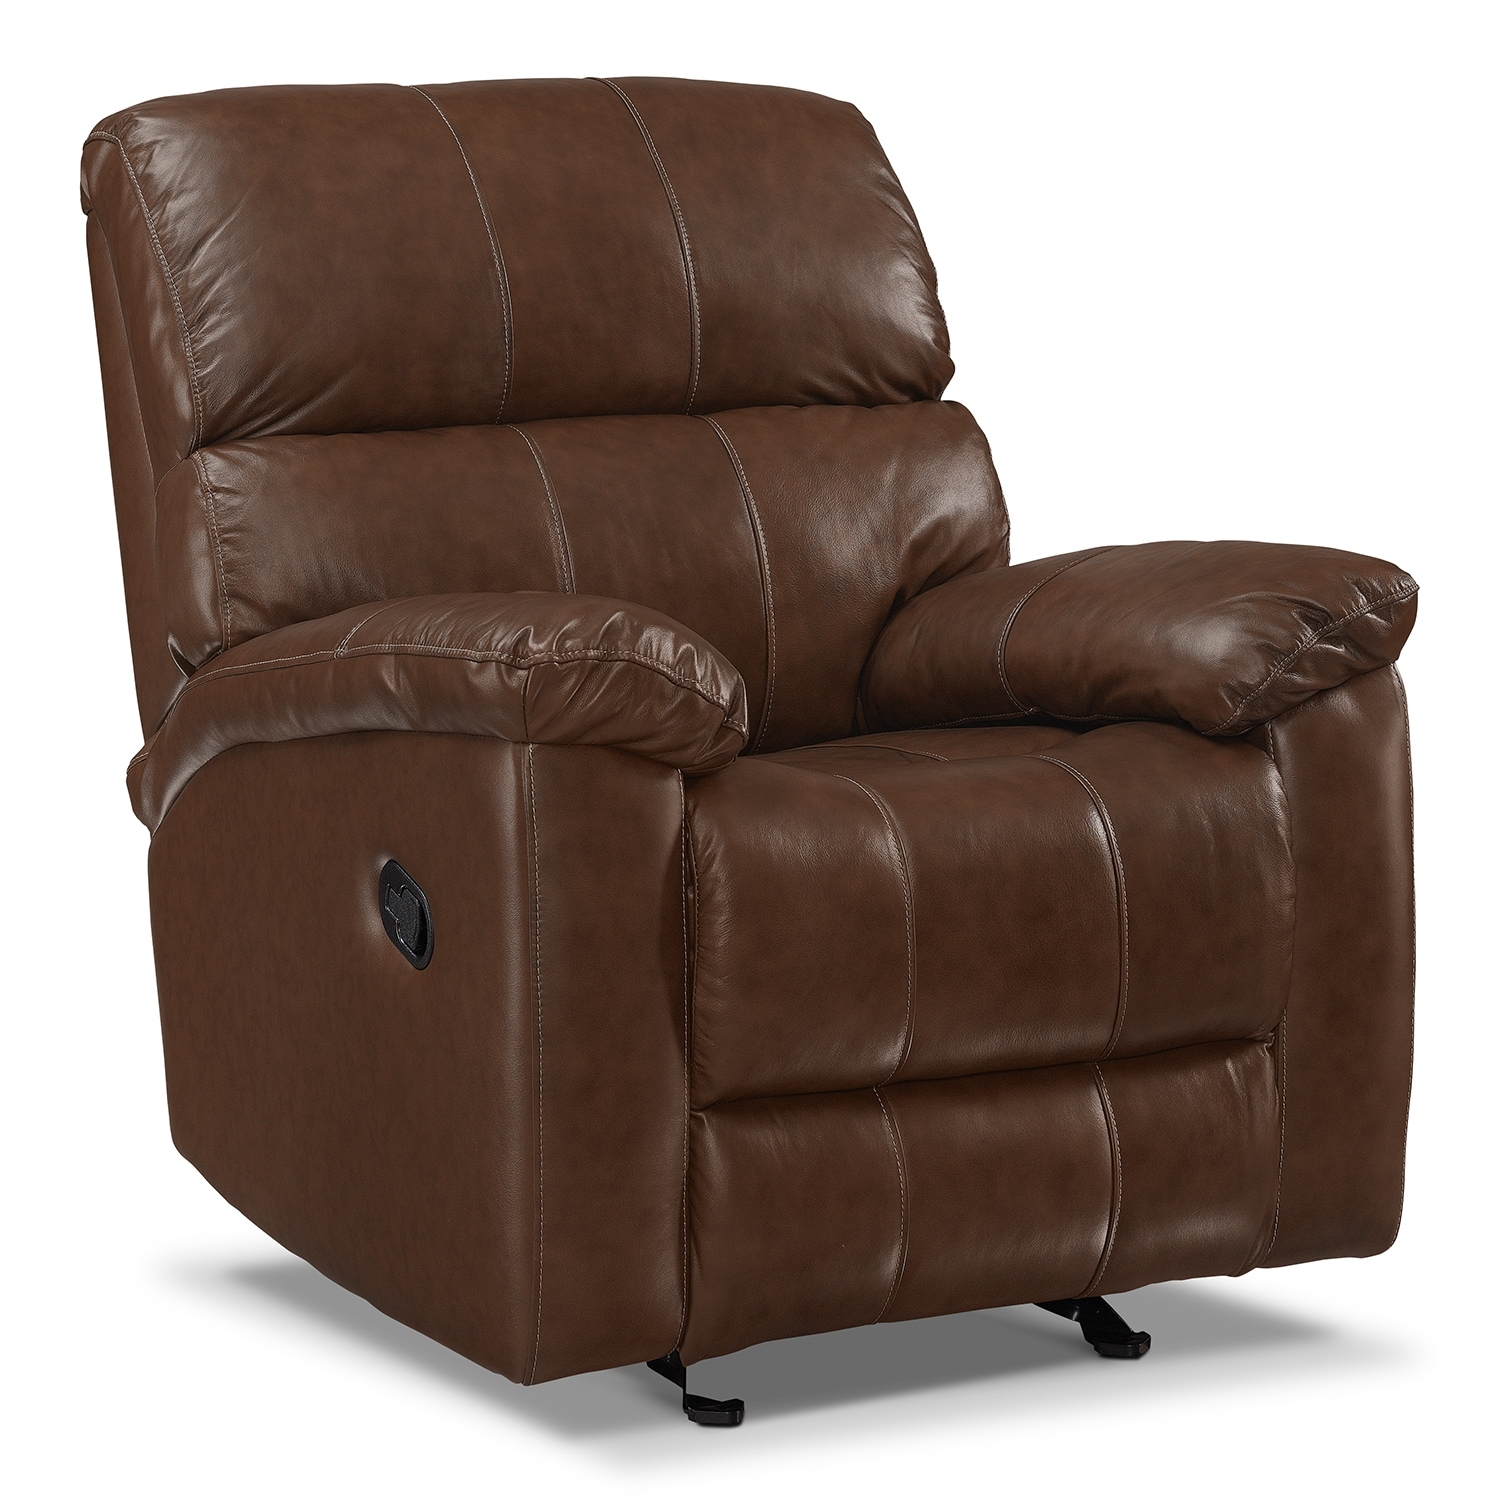 Hamilton Leather Rocker Recliner Value City Furniture